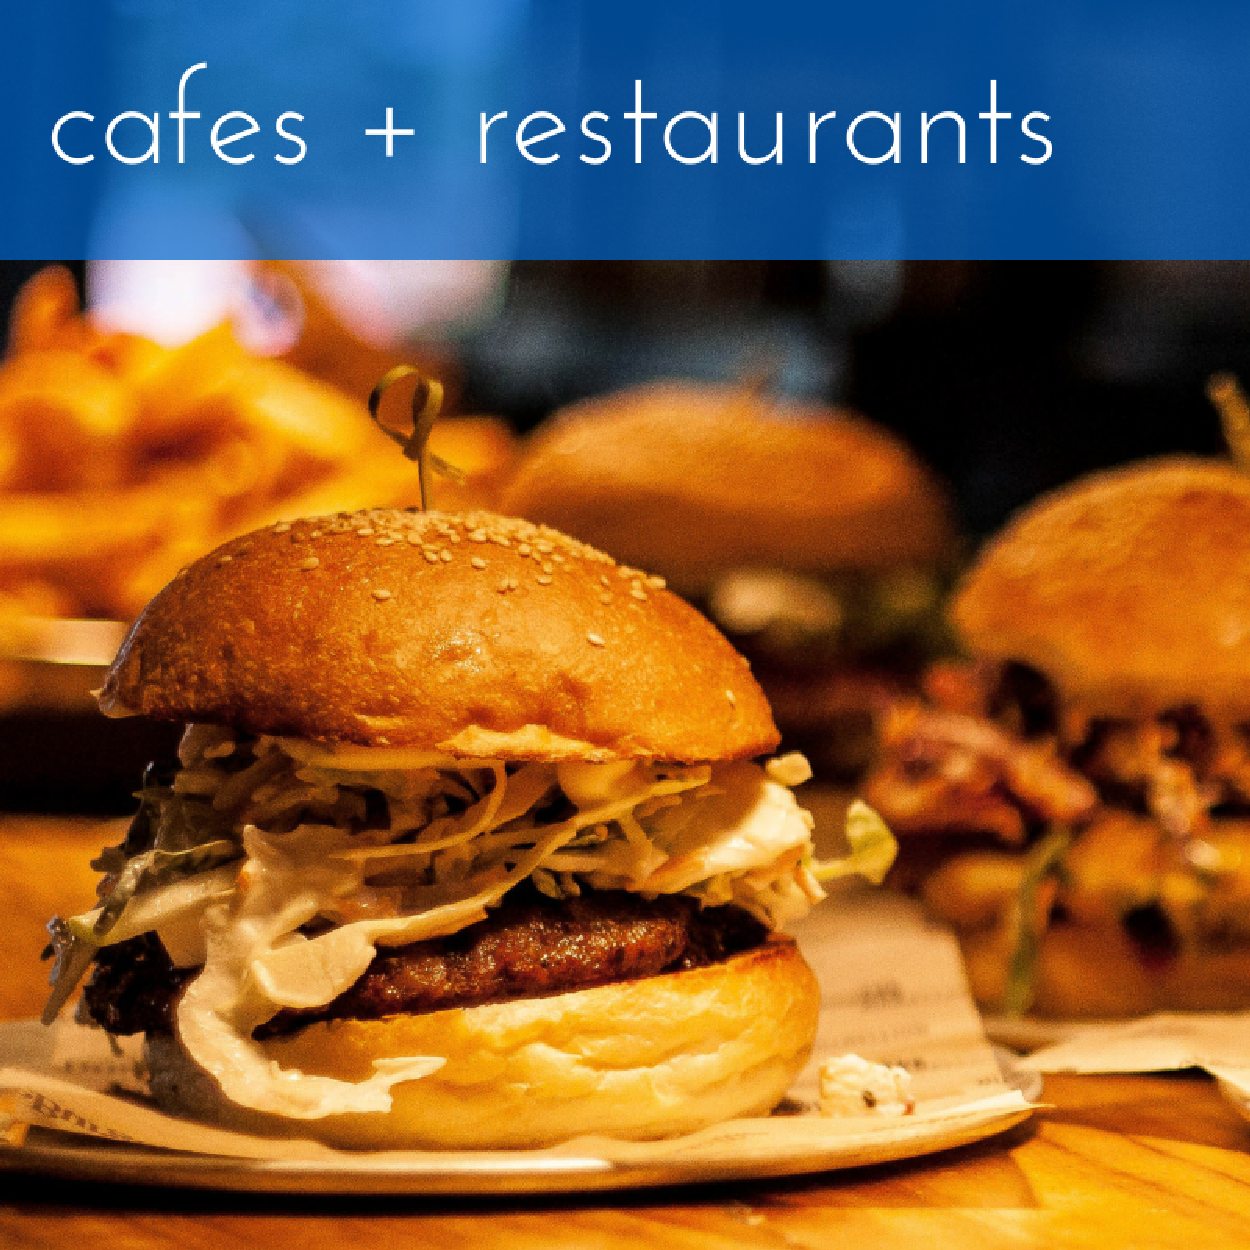 Cafes and restaurants in Port Macquarie